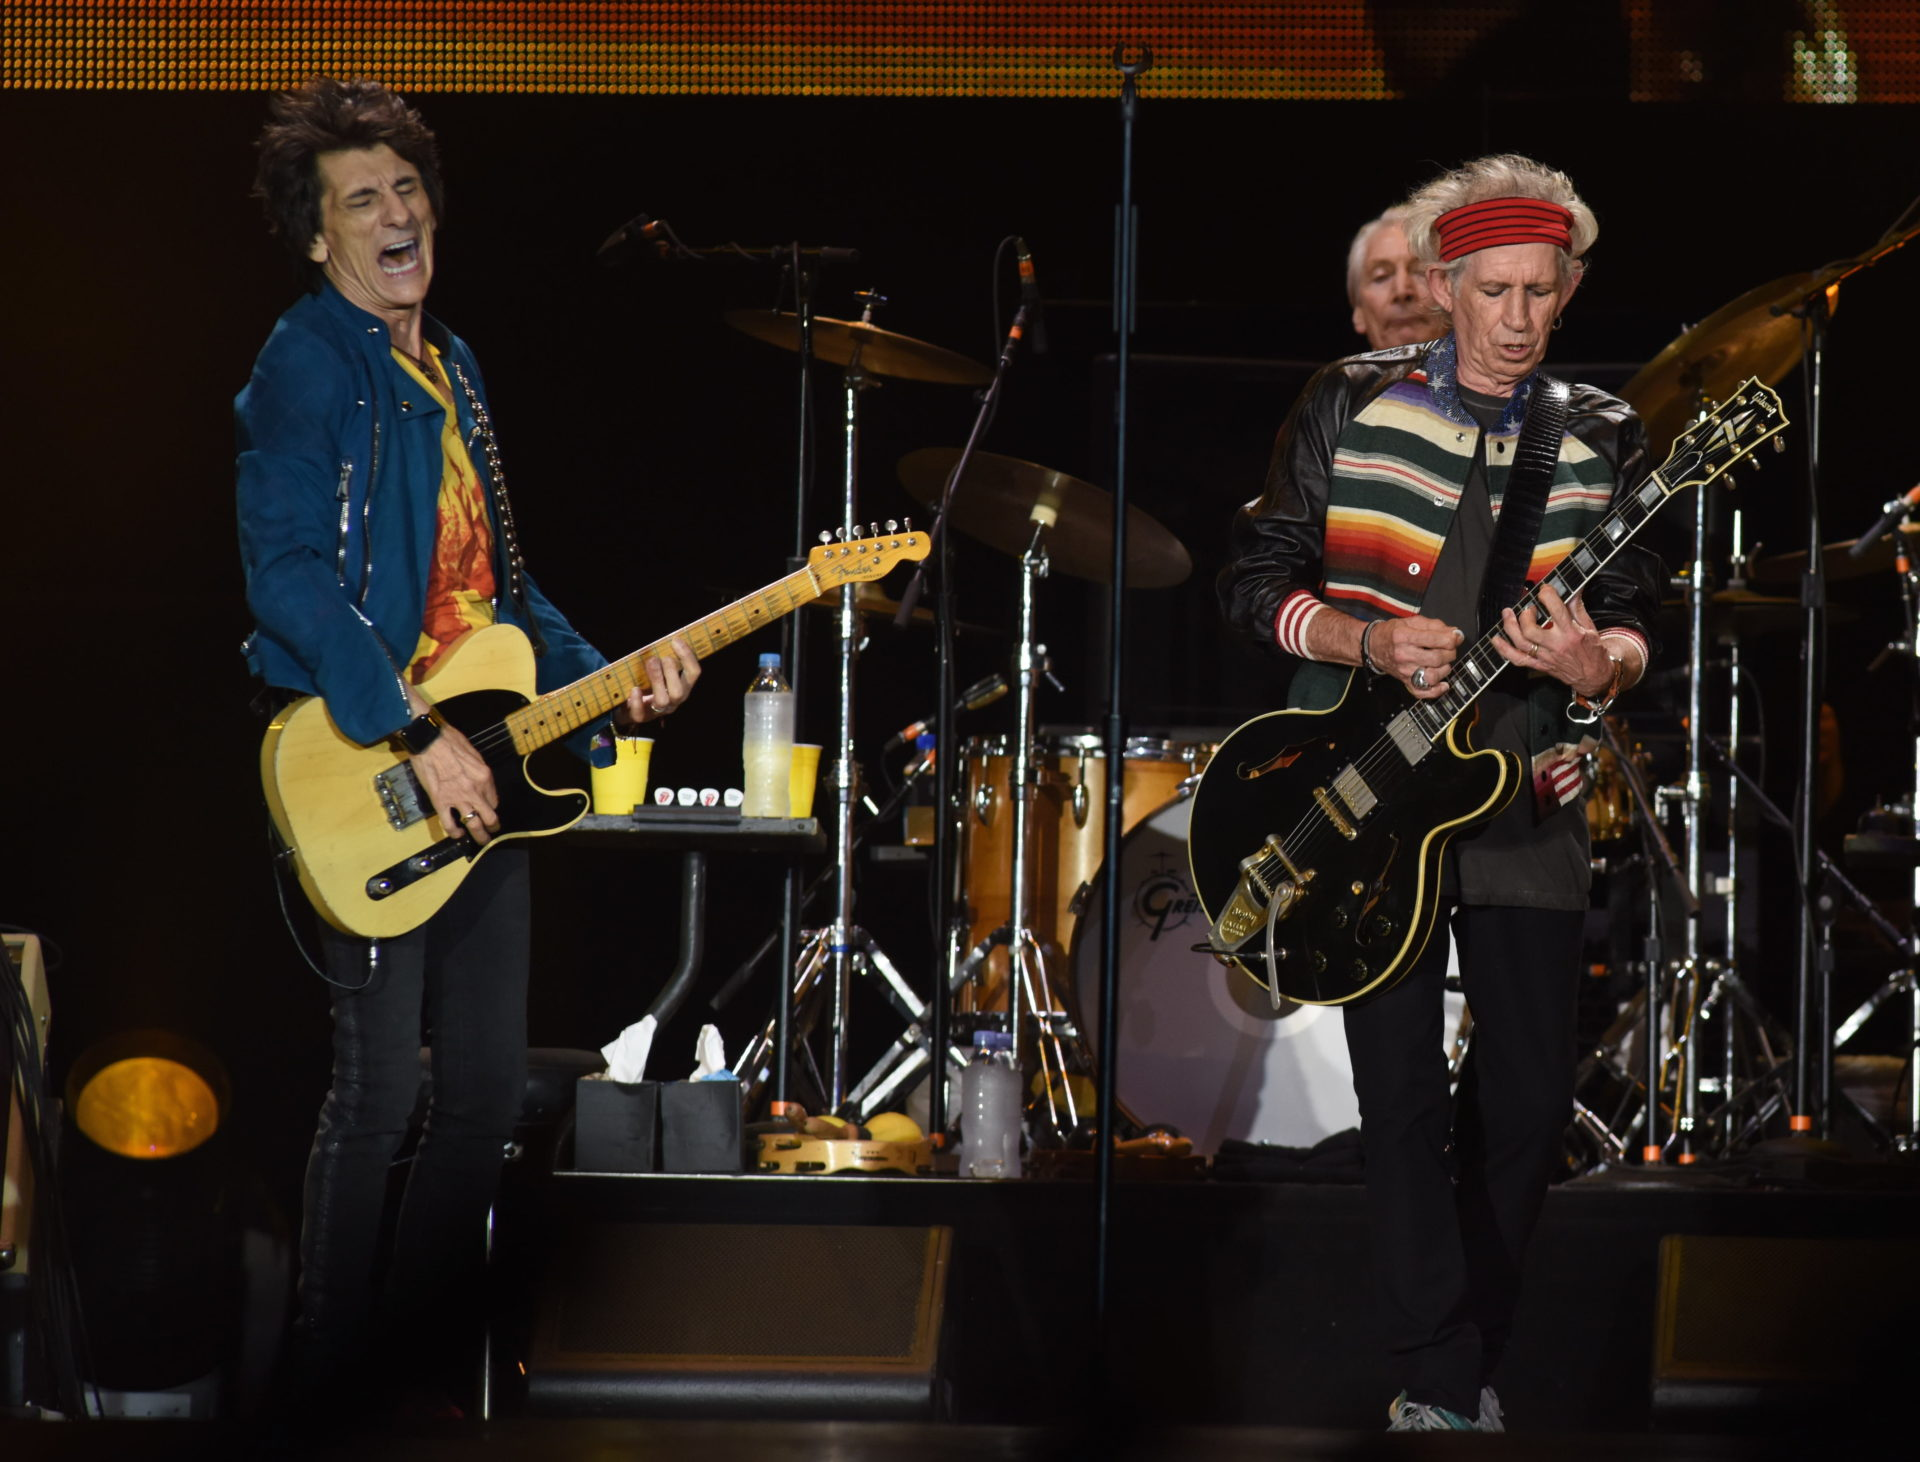 Ron Wood y Keith Richards destacaron en concierto de los Rolling Stones en Lima.